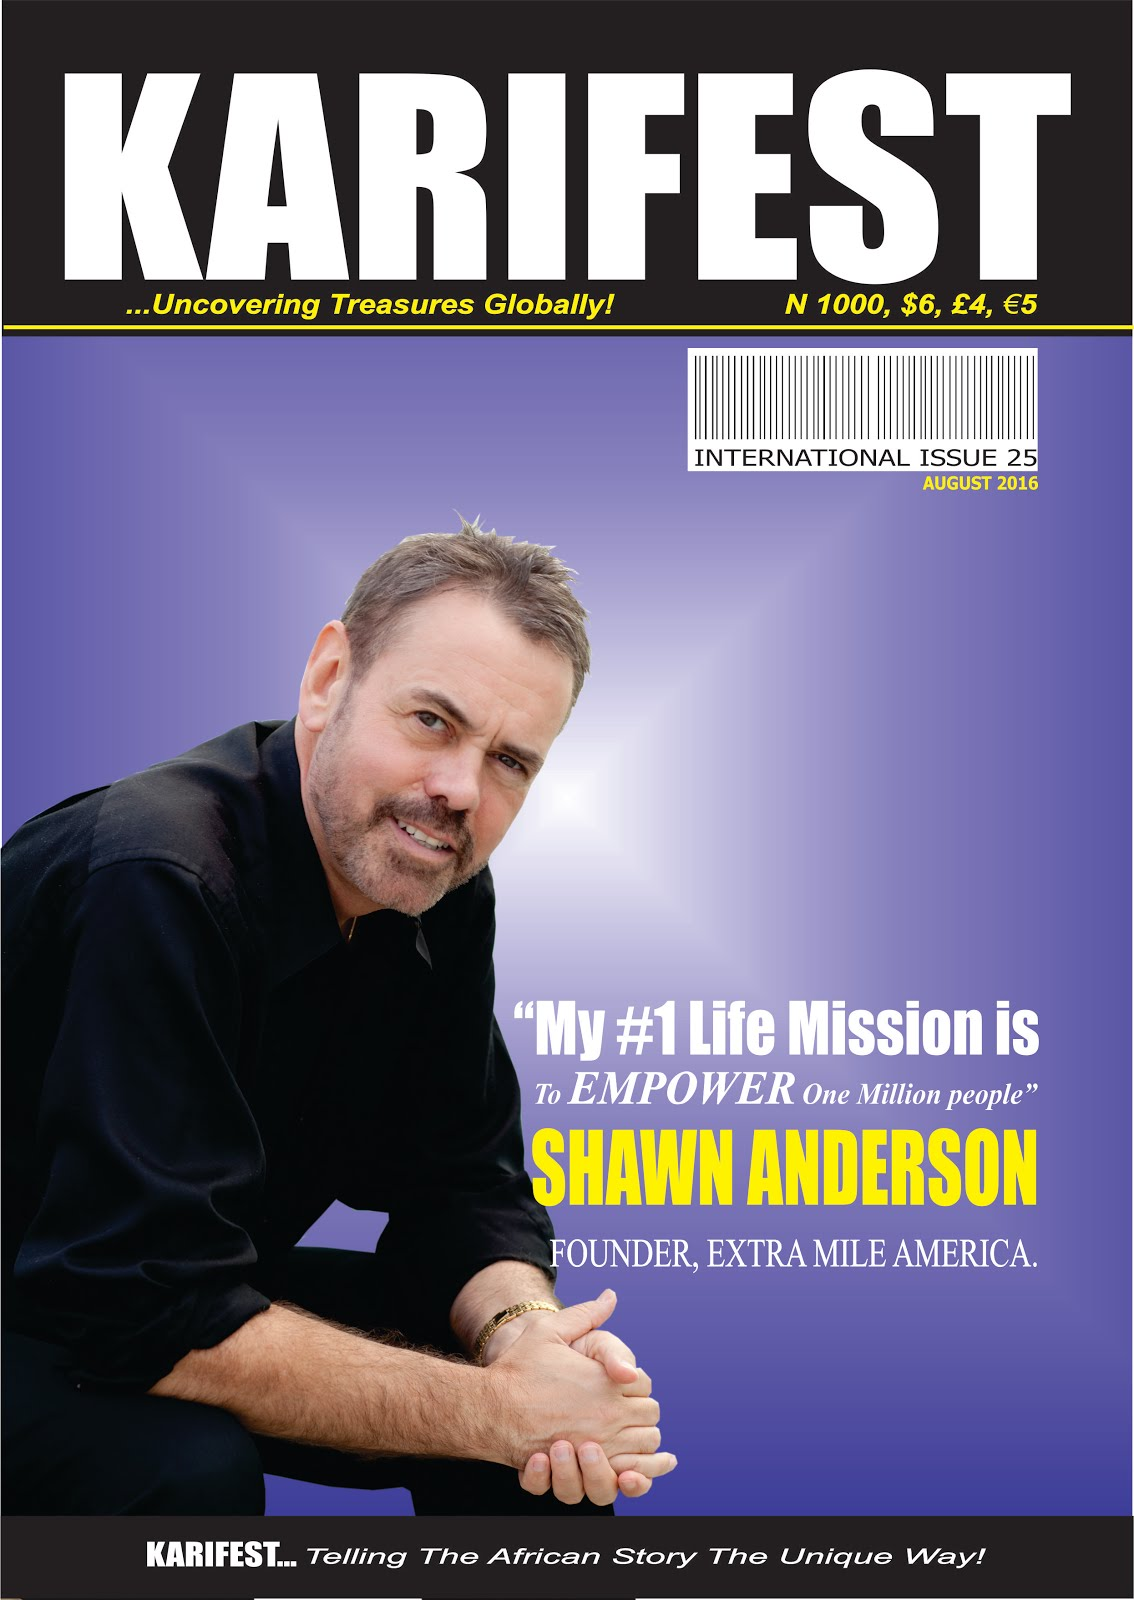 August 2016 KARIFEST INT'L ISSUE Cover Story Interview: SHAWN ANDERSON: FOUNDER, Extra Mile America